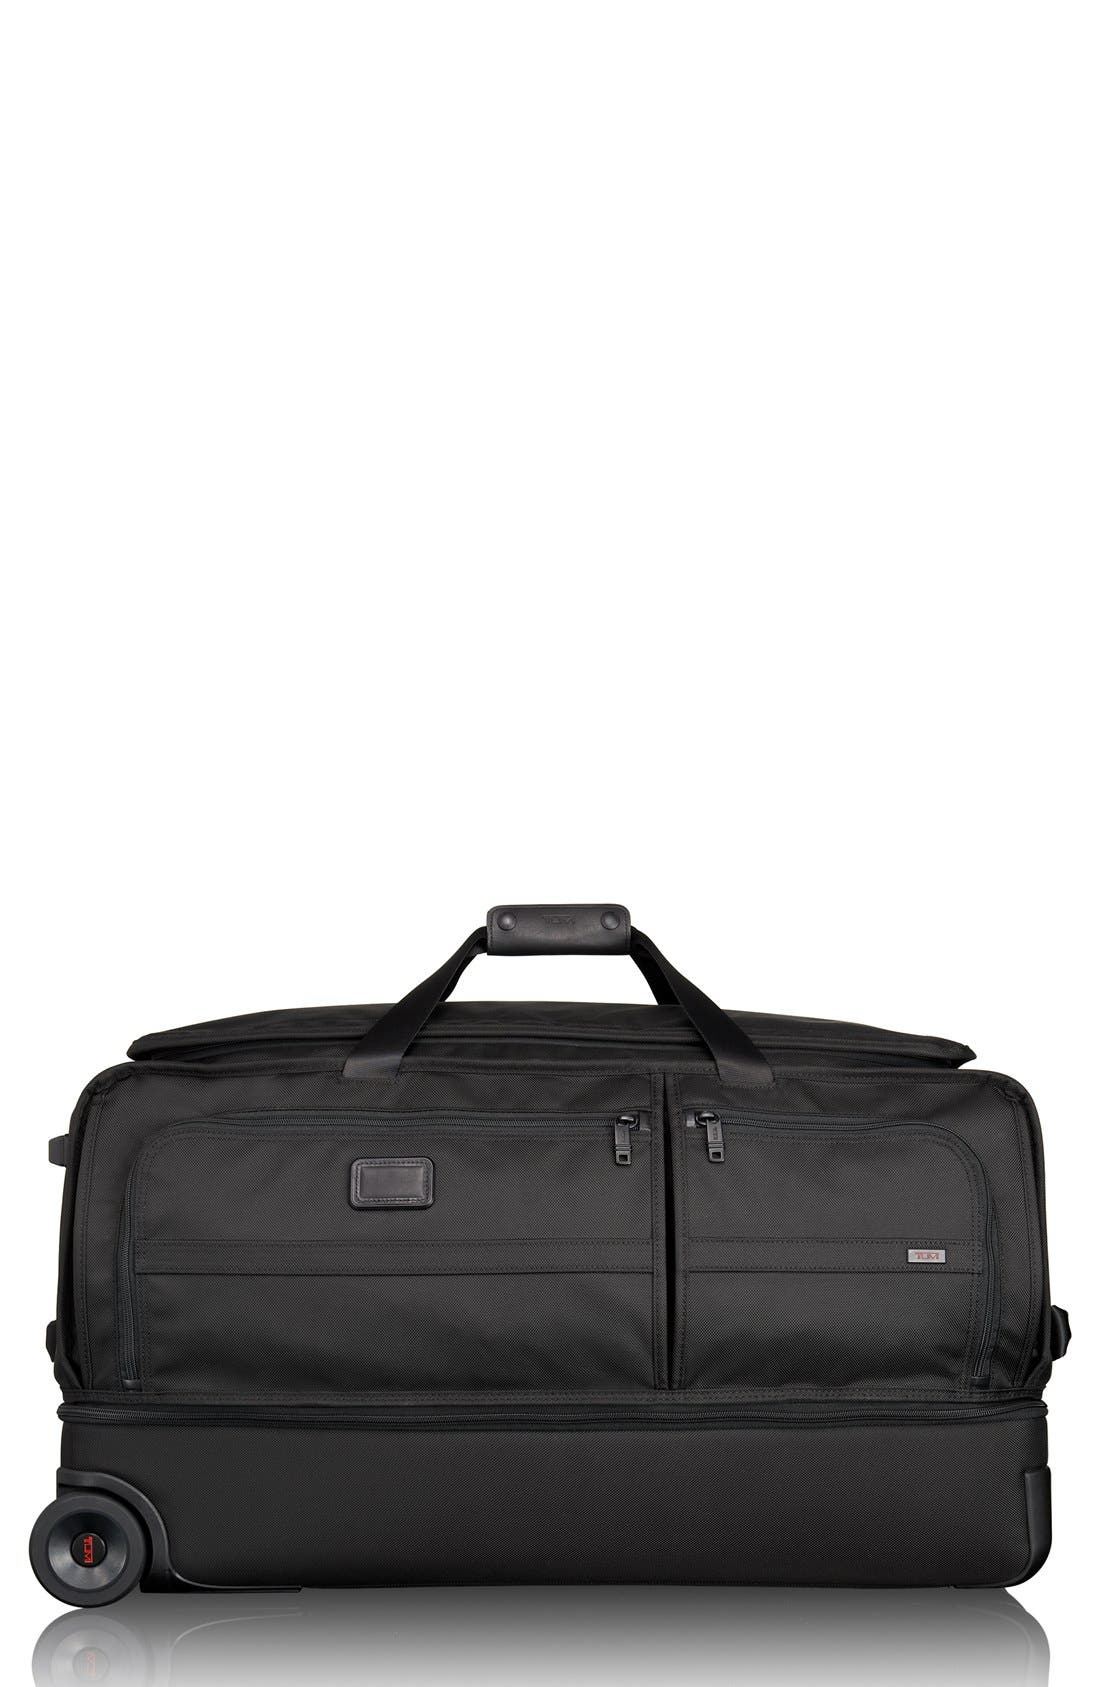 Alpha 2 31-Inch Rolling Two-Wheel Duffel Bag,                         Main,                         color, Black